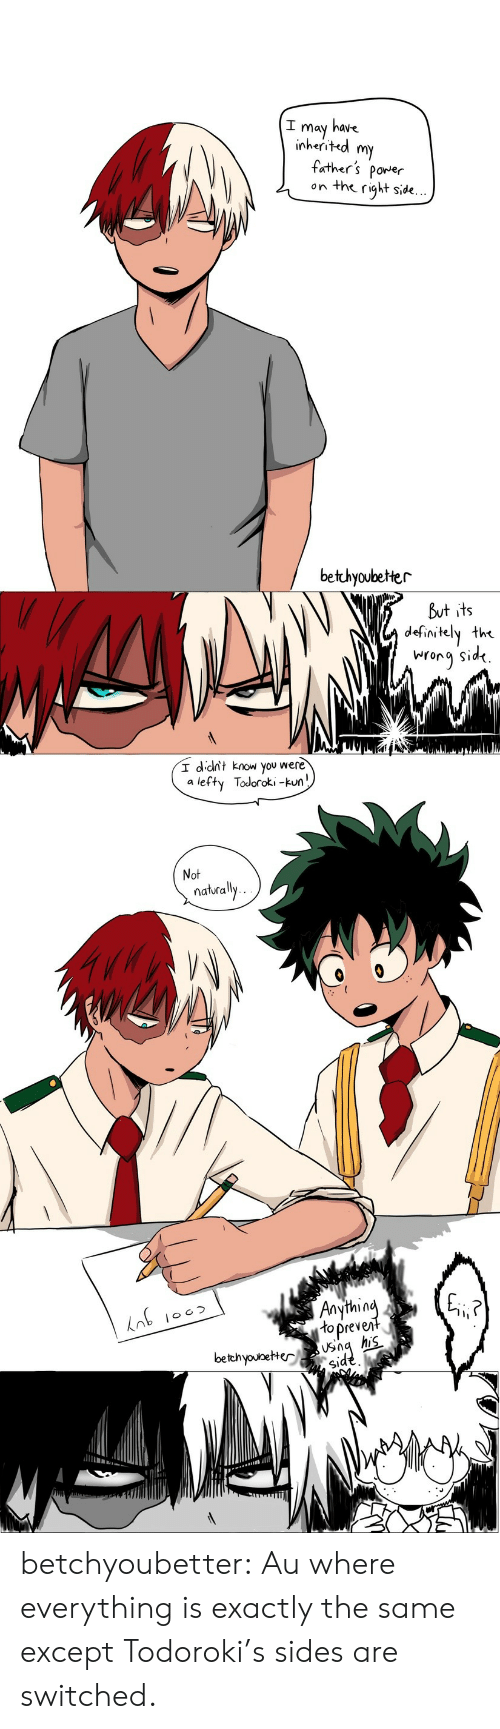 Definitely, Target, and Tumblr: I may have  inherited m  father's porer  on the right side.  bethyoubeter  But its  definitely the  iNrora Sid<.   I dcit know you were  a lefty Todoroki -kun  Not  naturally  in  to preve  bethyouoeter  id  S1 betchyoubetter:  Au where everything is exactly the same except Todoroki's sides are switched.